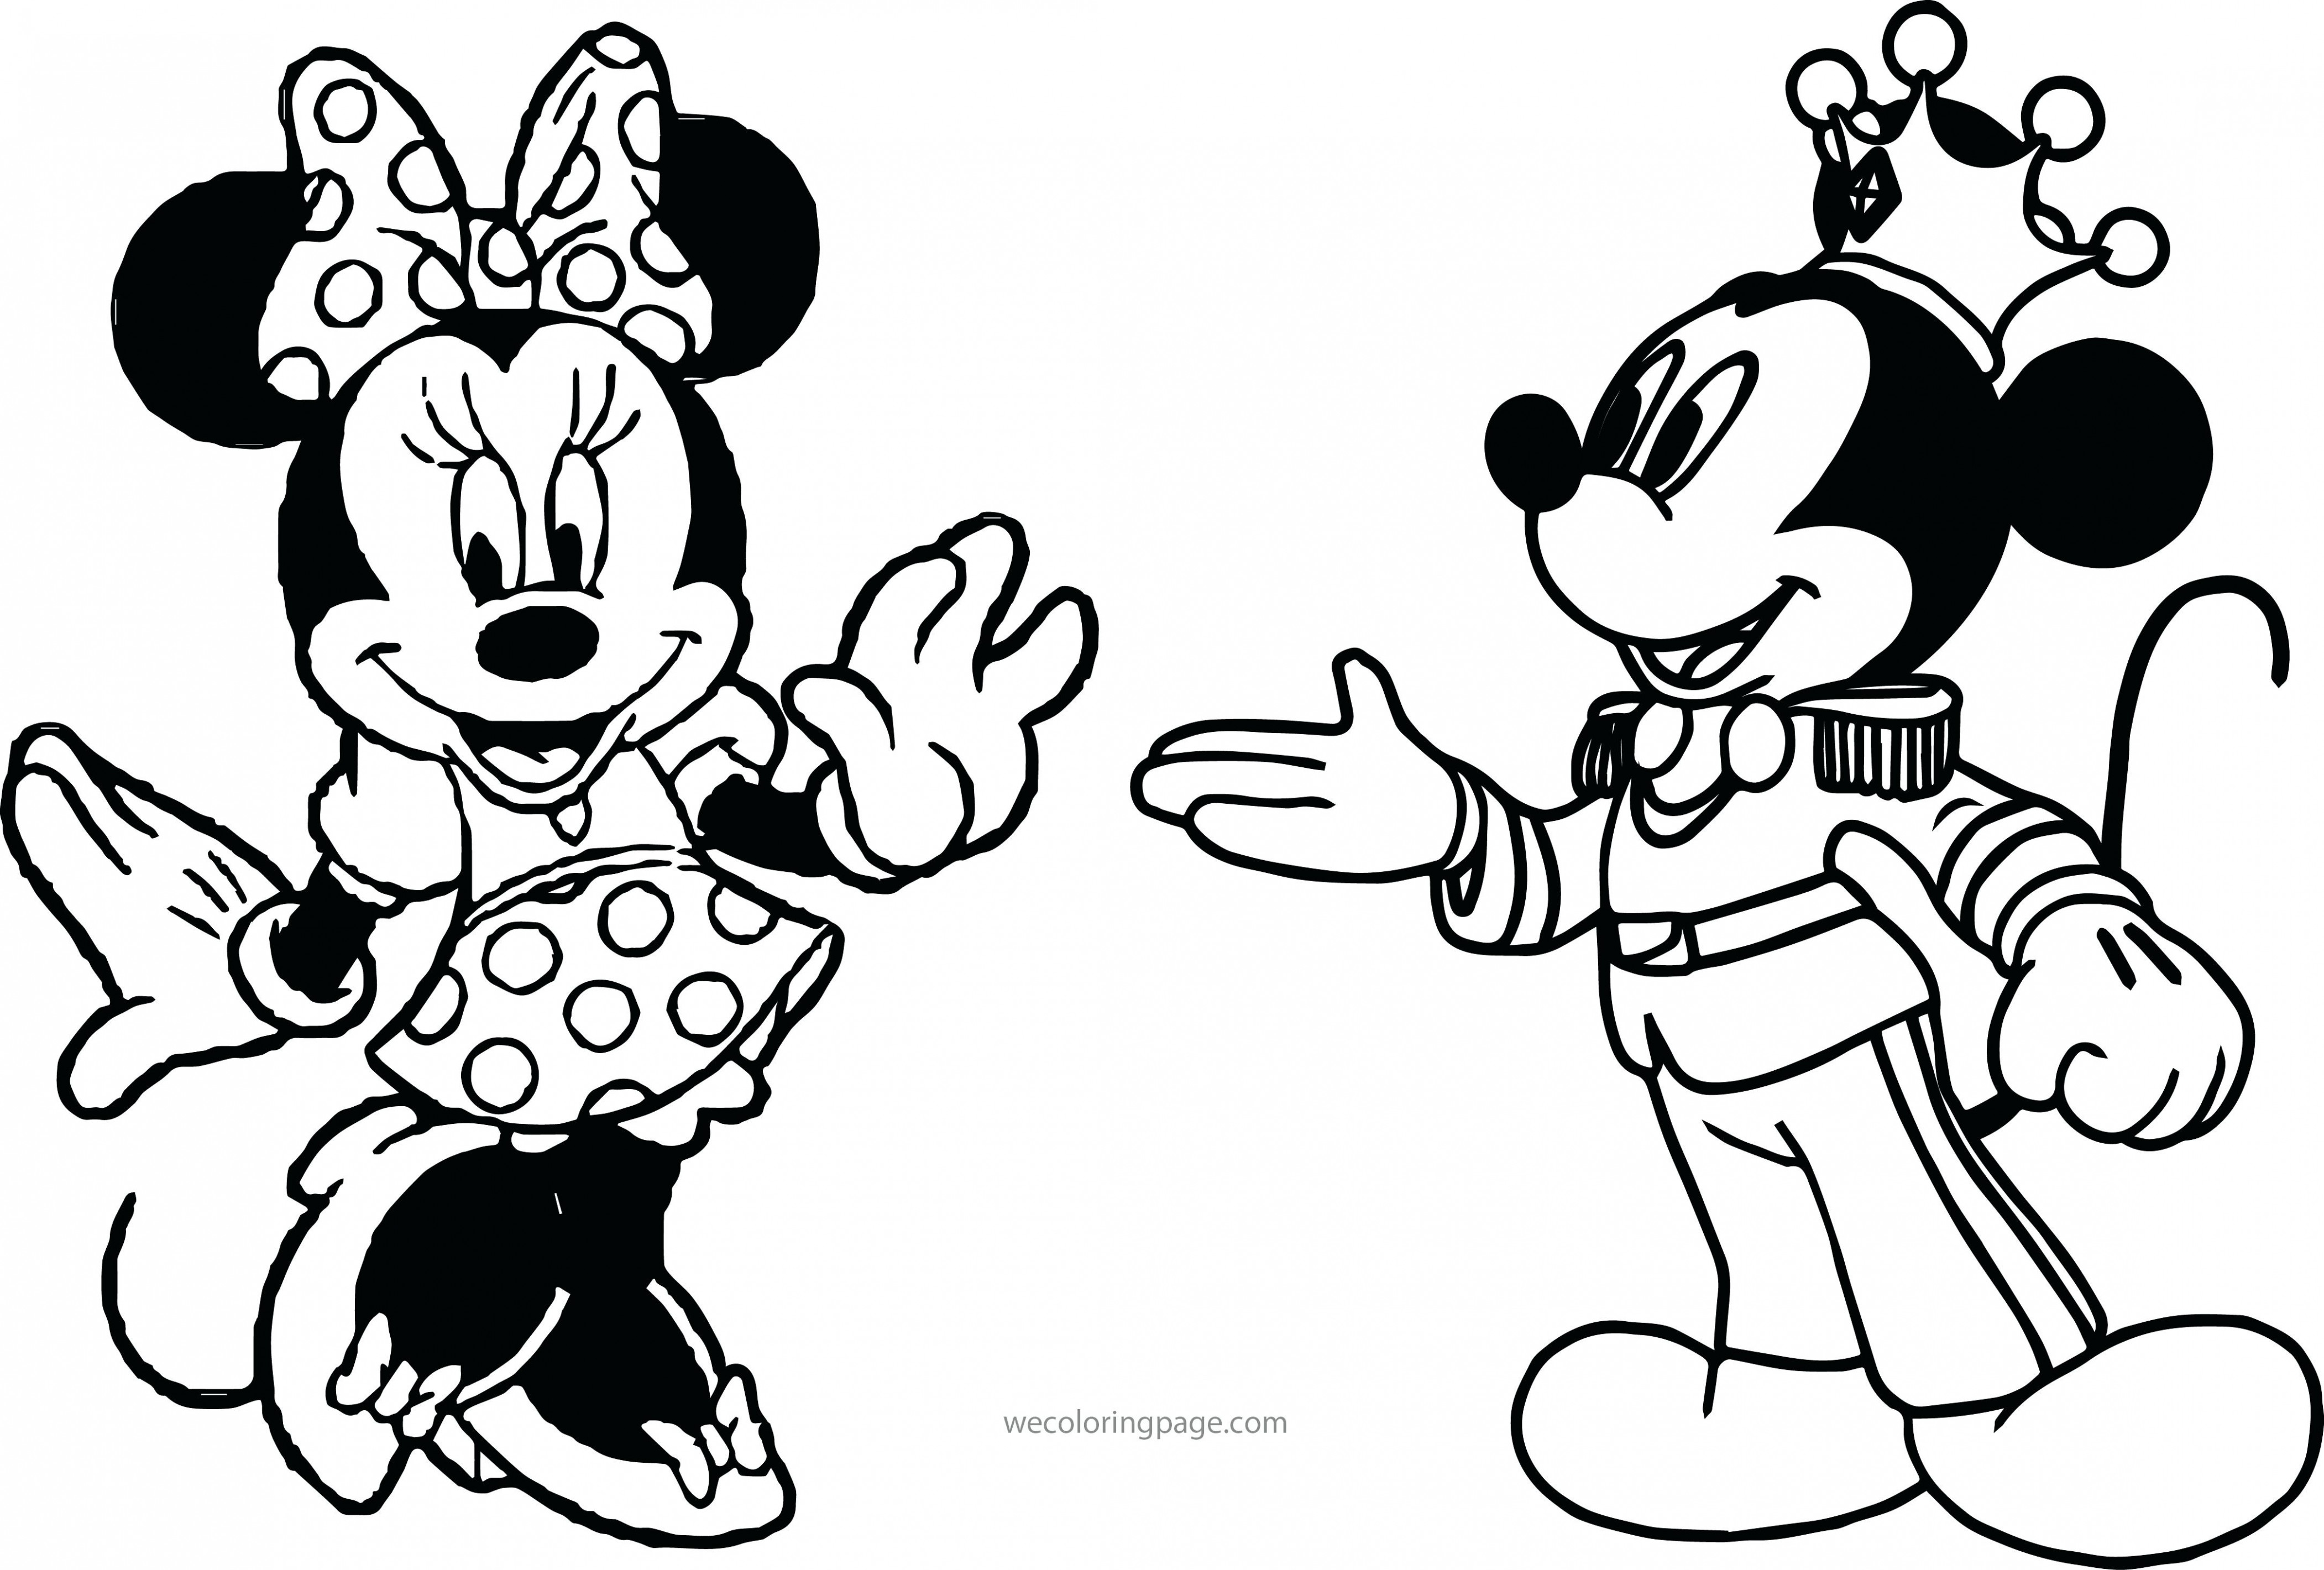 Coloring Ideas : Mickey Mouse Christmas Coloring Pages Free Print ...